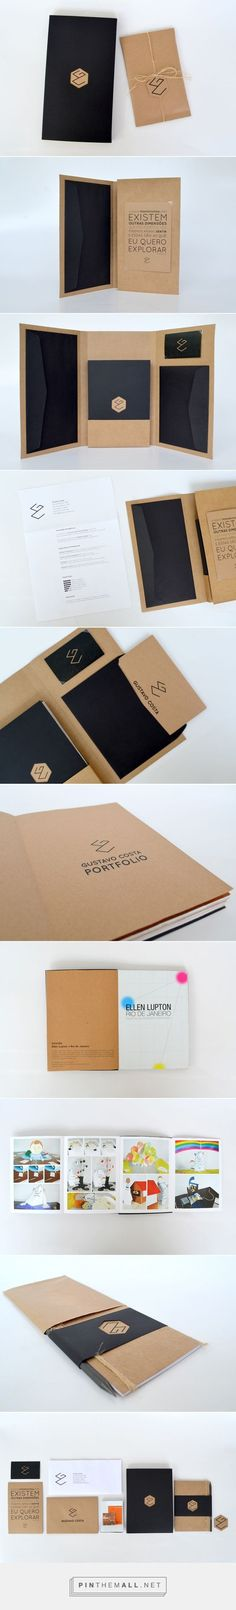 Self Promotion Kit | Gustavo Costa on Behance - created via http://pinthemall.net: